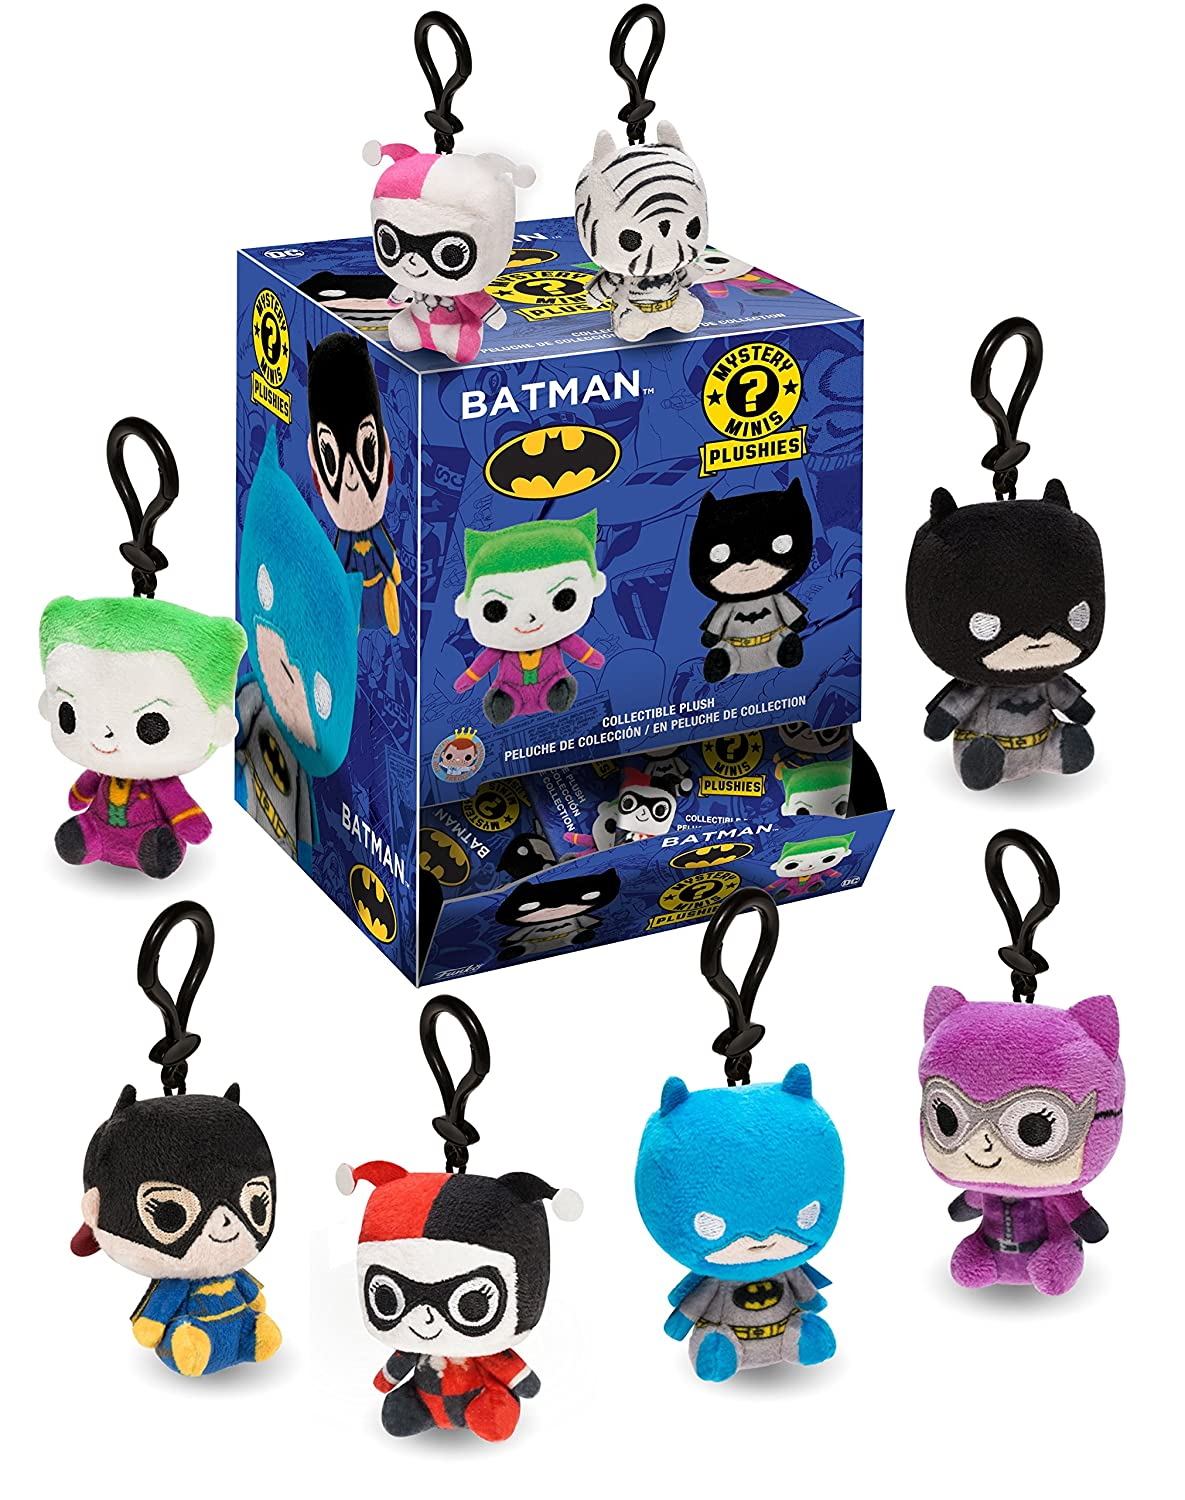 Amazon.com: Funko Blind Box DC-Batman (One Mystery Plush) Collectible Figure: Funko Plush:: Toys & Games